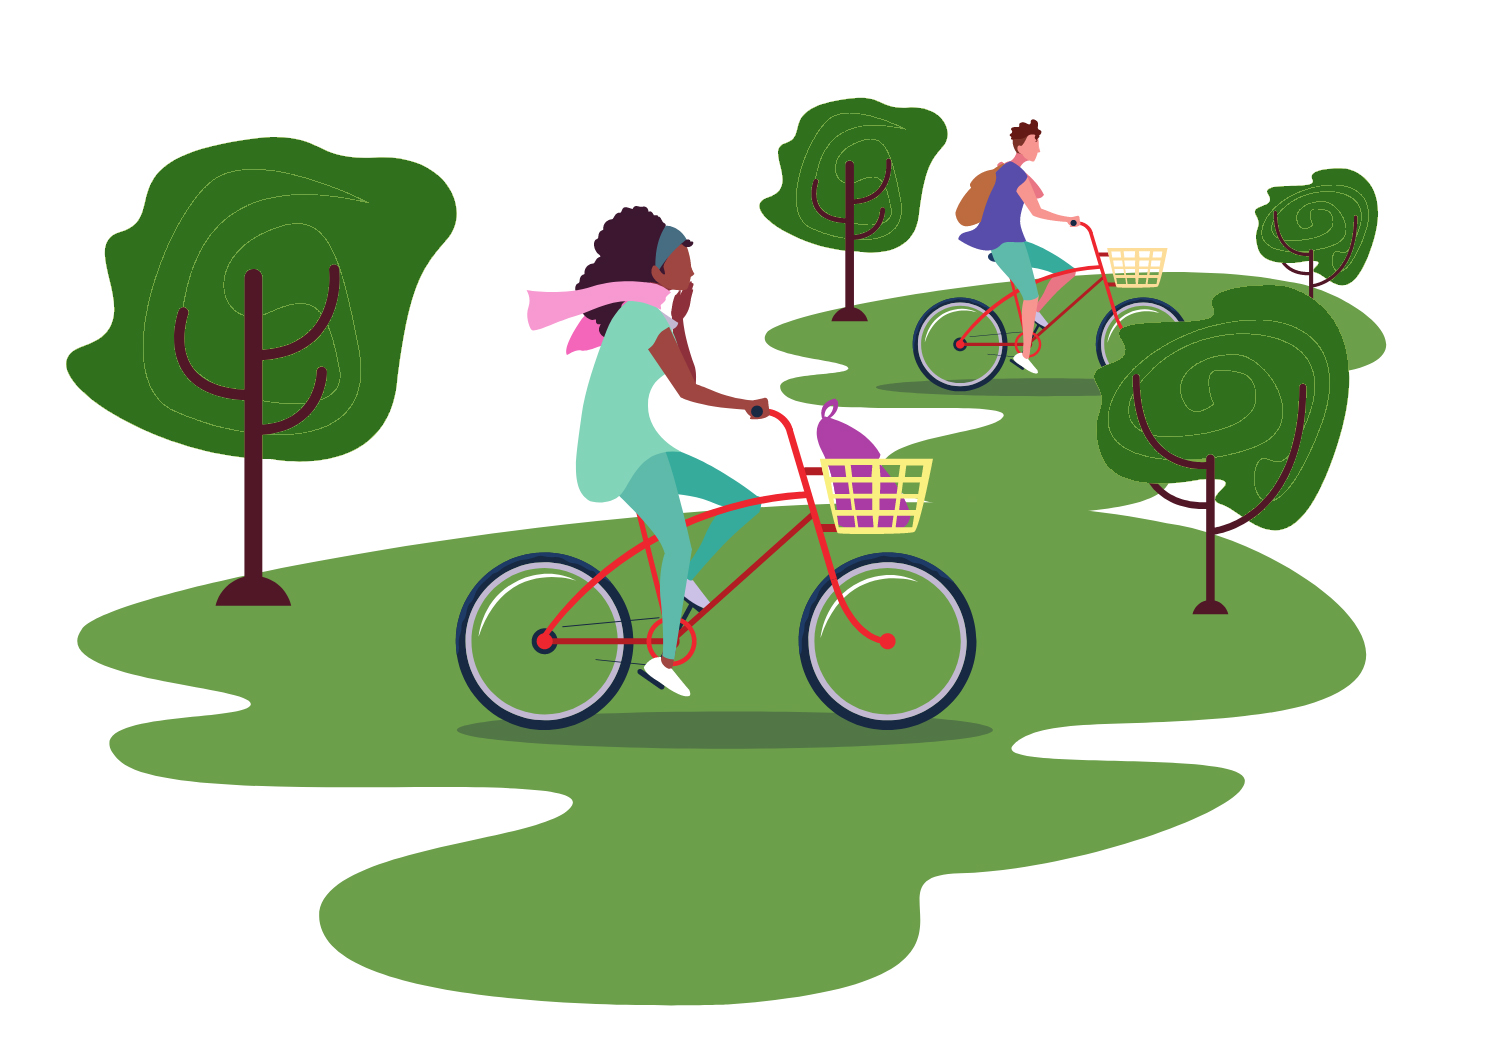 Two people cycling in a forest have less carbon offsetting to do